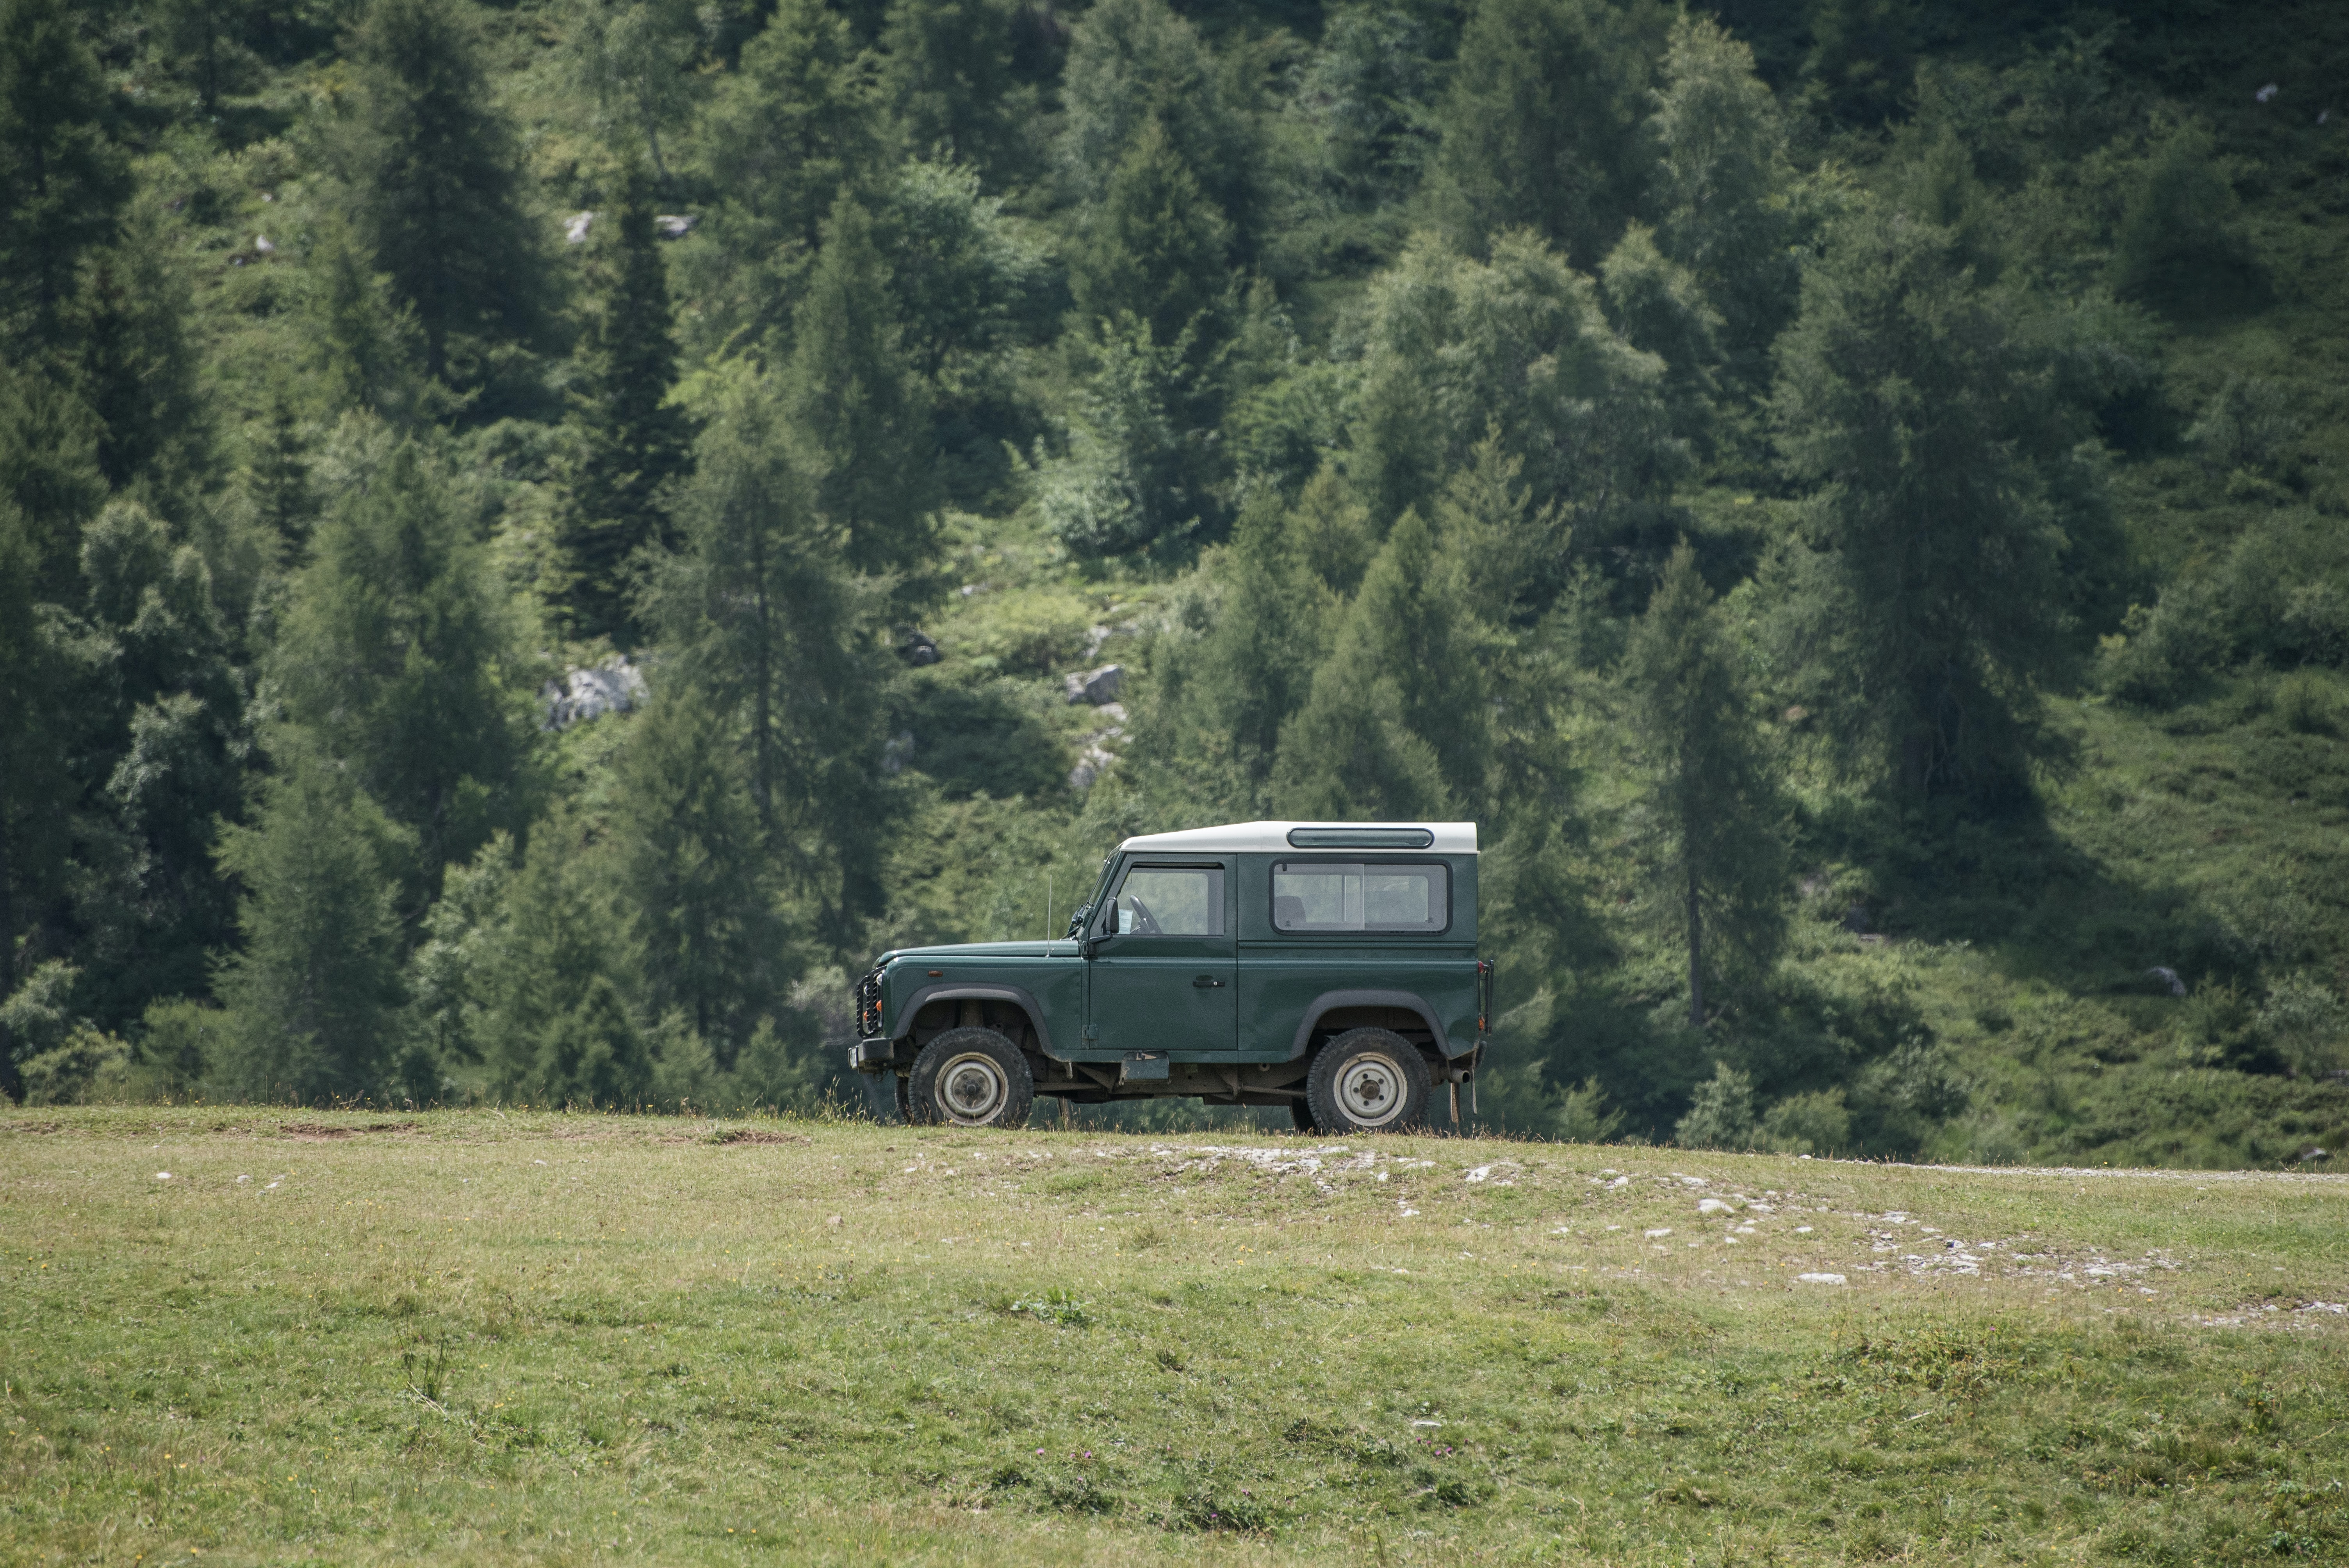 A green land rover/jeep with four-wheel drive in the forest